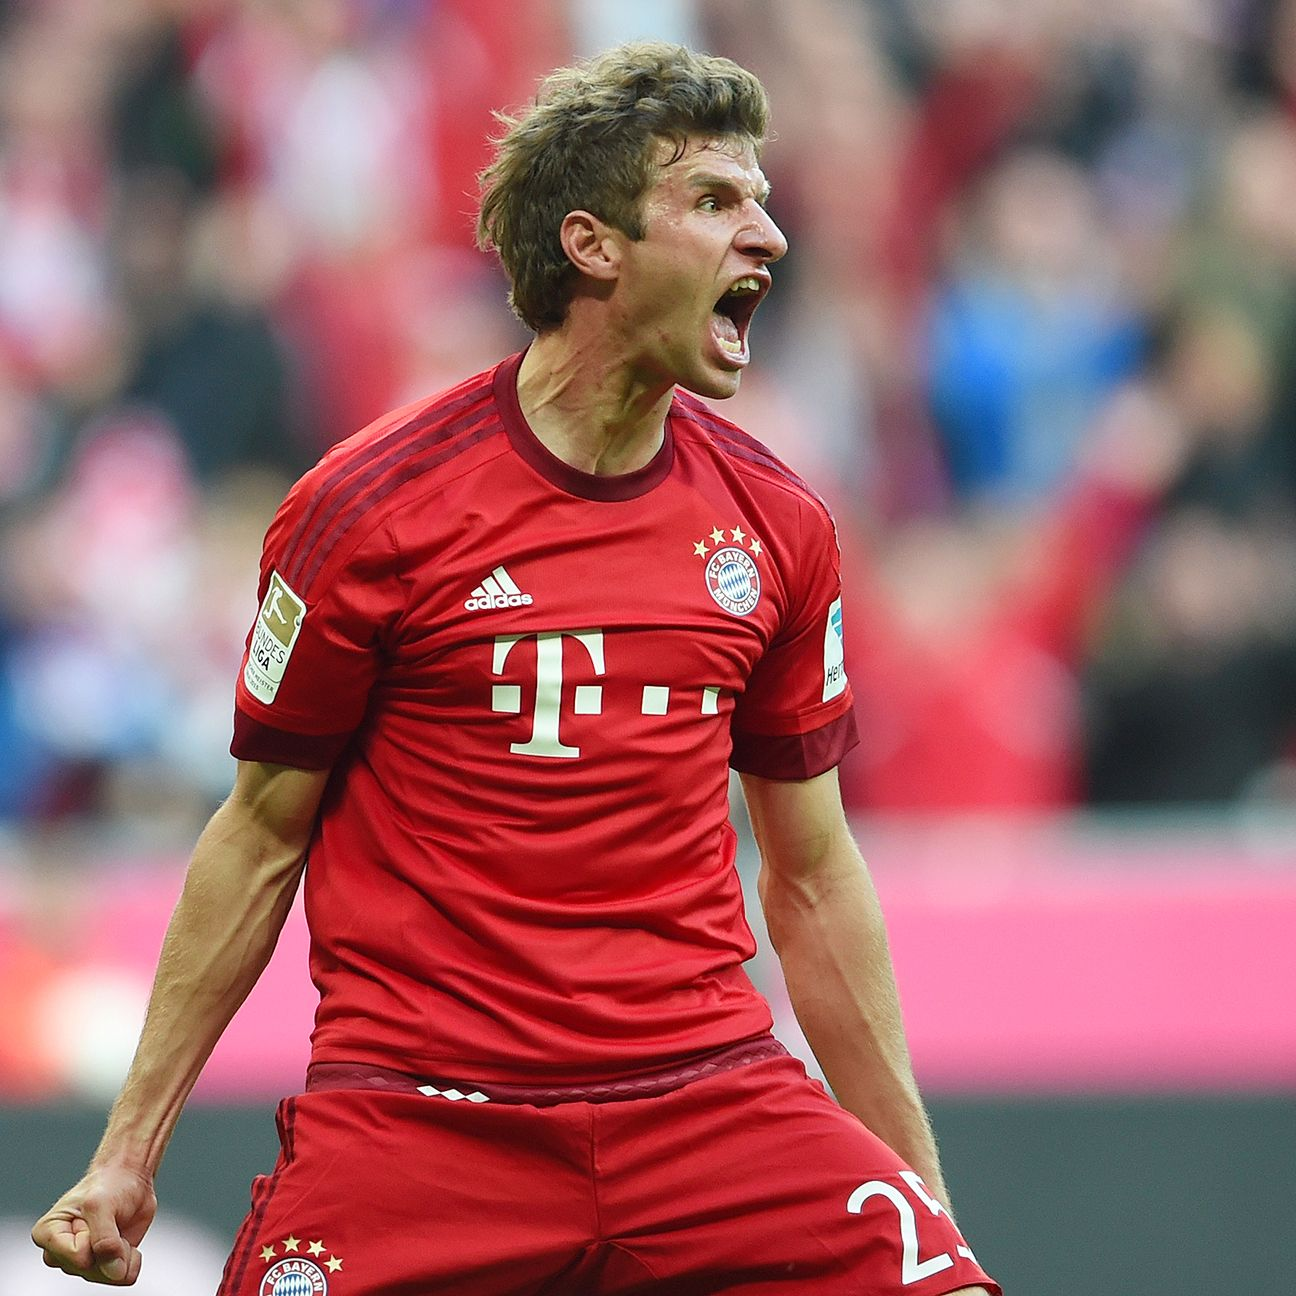 Thomas Muller and Bayern Munich continue to wreak havoc on the Bundesliga after crushing Dortmund 5-1 on Sunday.